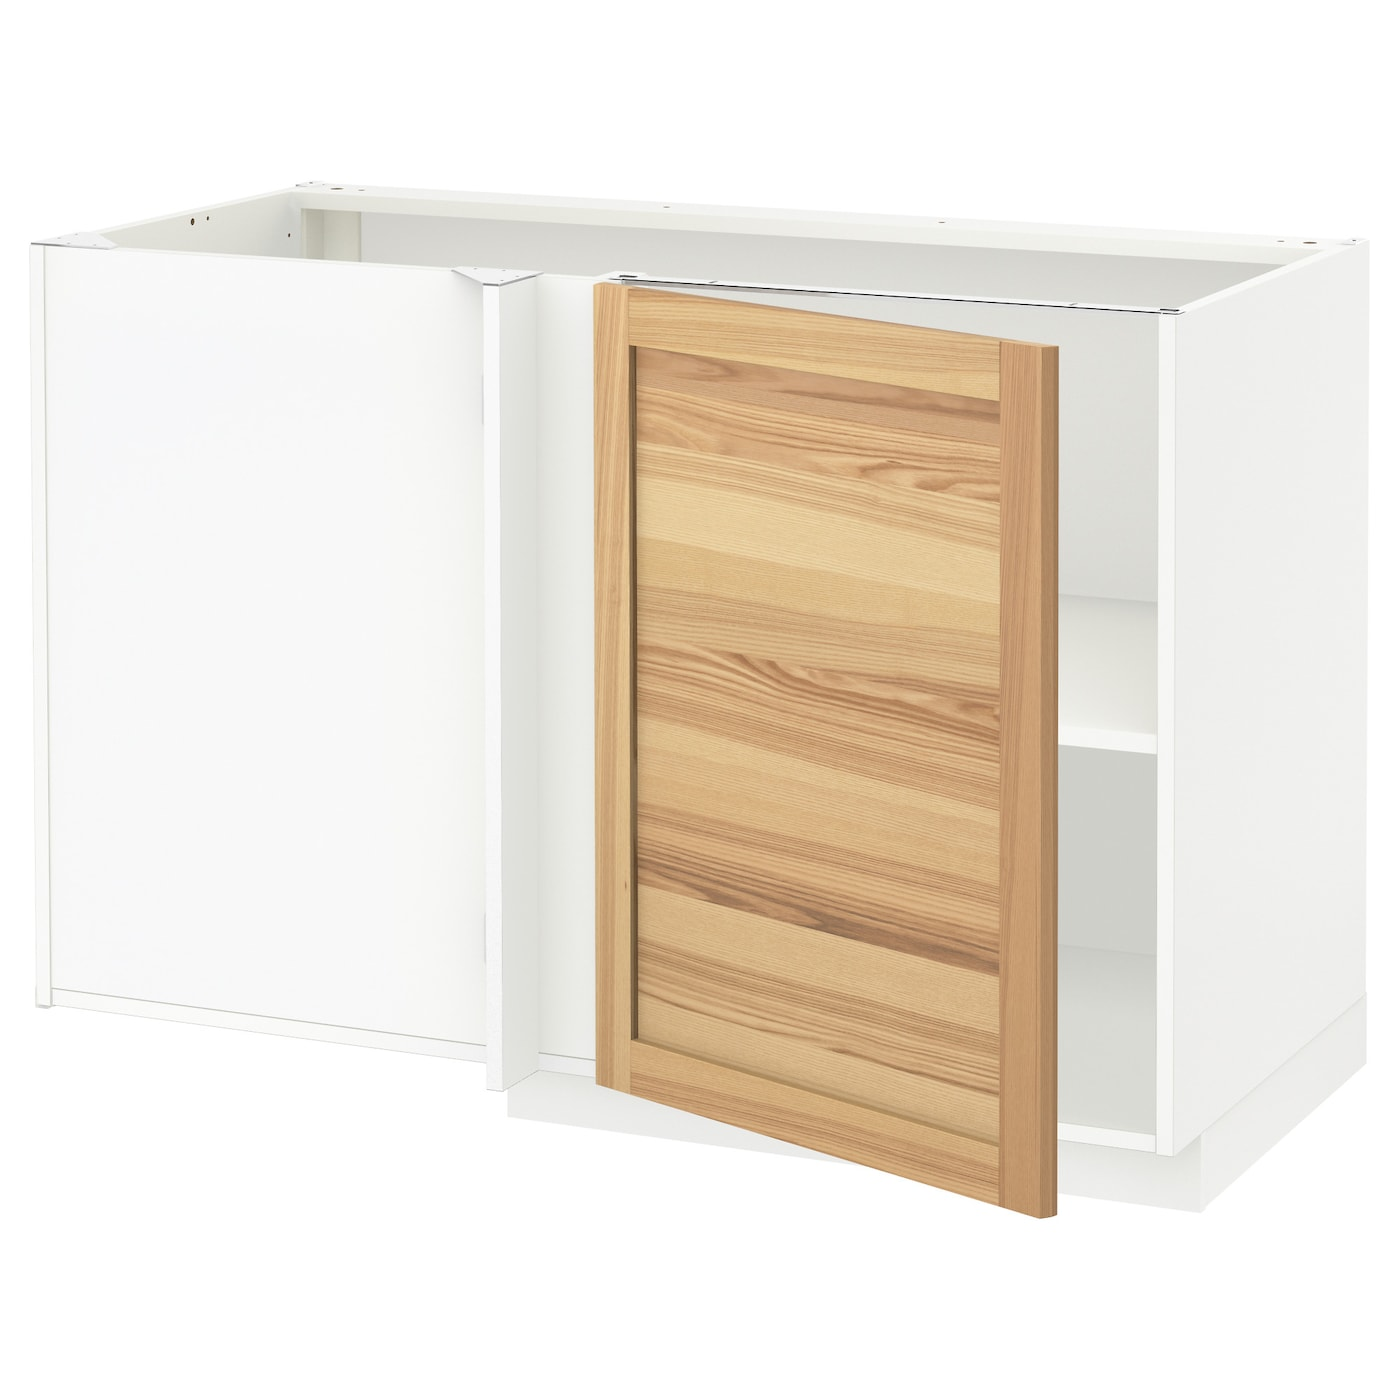 Metod Corner Base Cabinet With Shelf White Torhamn Ash 128x68 Cm Ikea